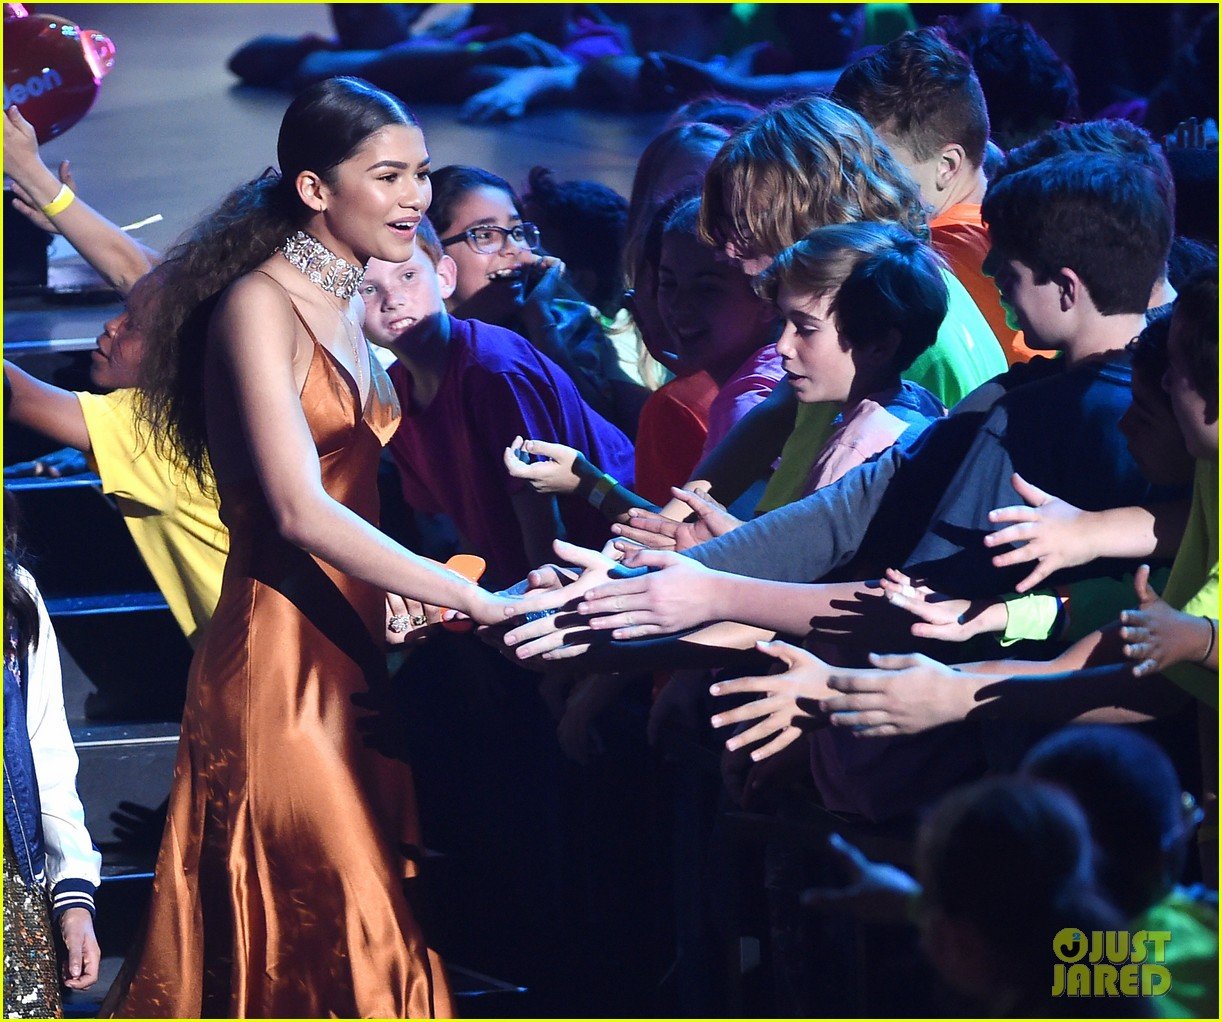 zendaya thanks fans after winning best actress at kcas 20172 01